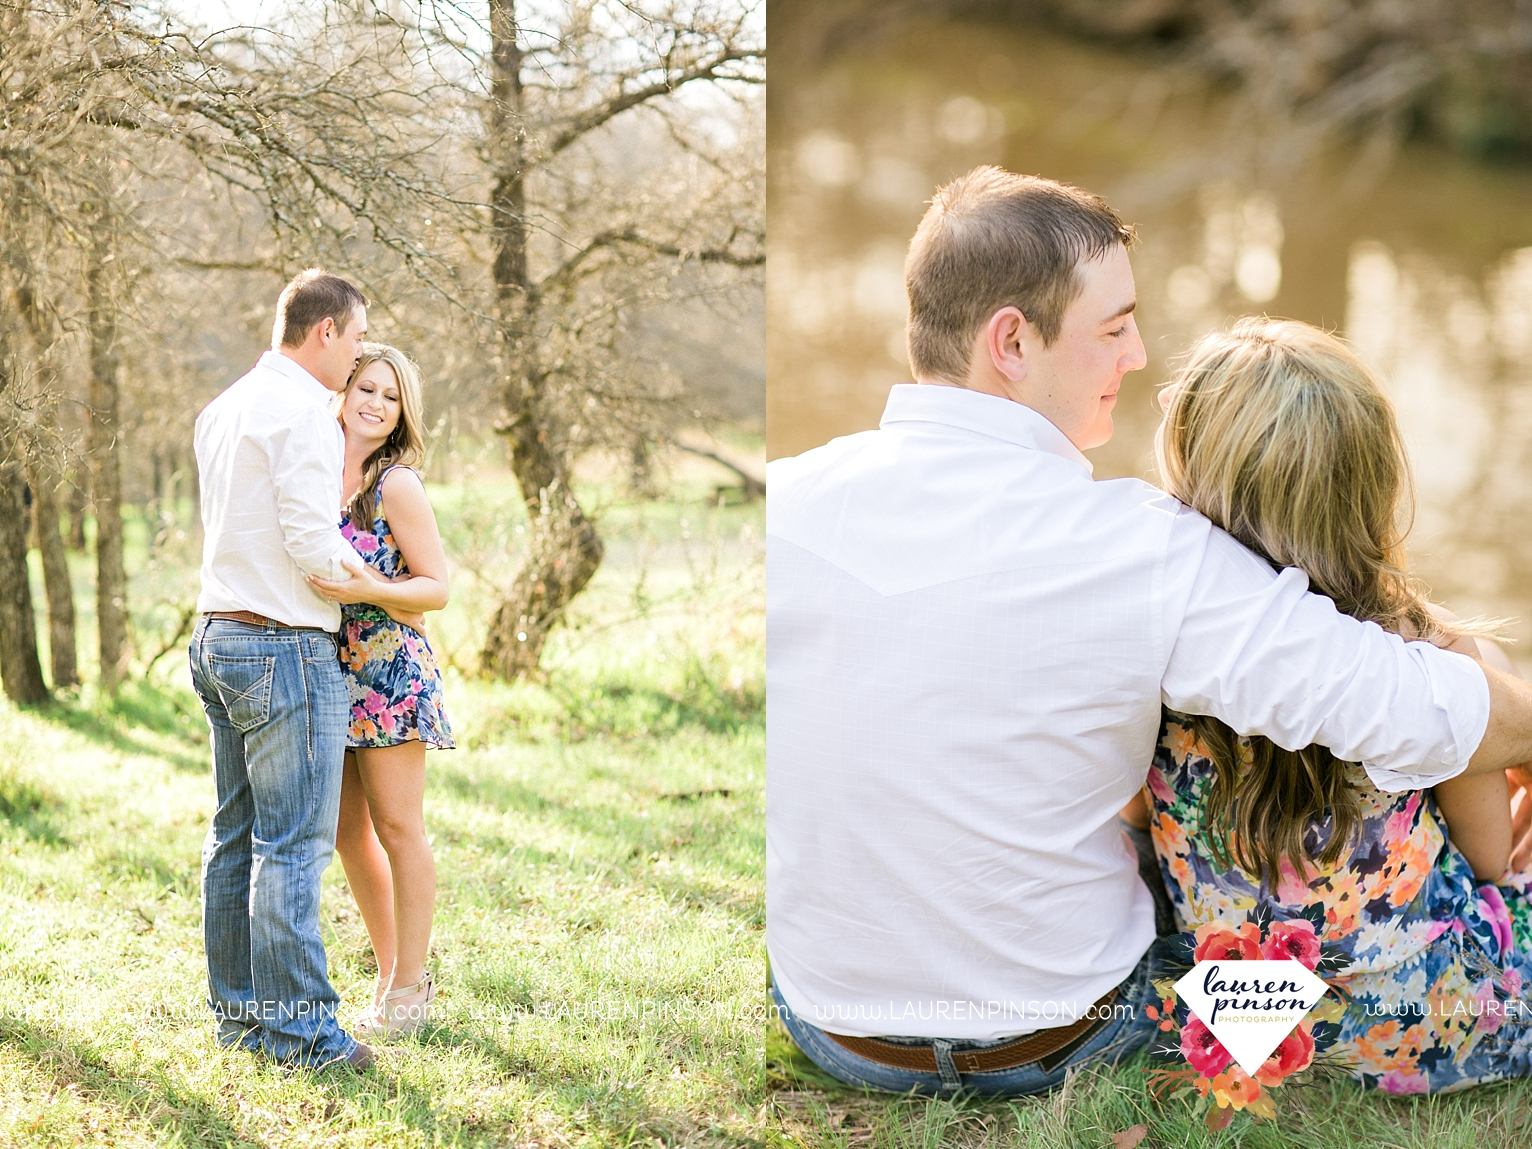 Wichita-falls-texas-country-outdoor-wheat-field-windthorst-engagement-session-and-wedding-photographer-00026.jpg